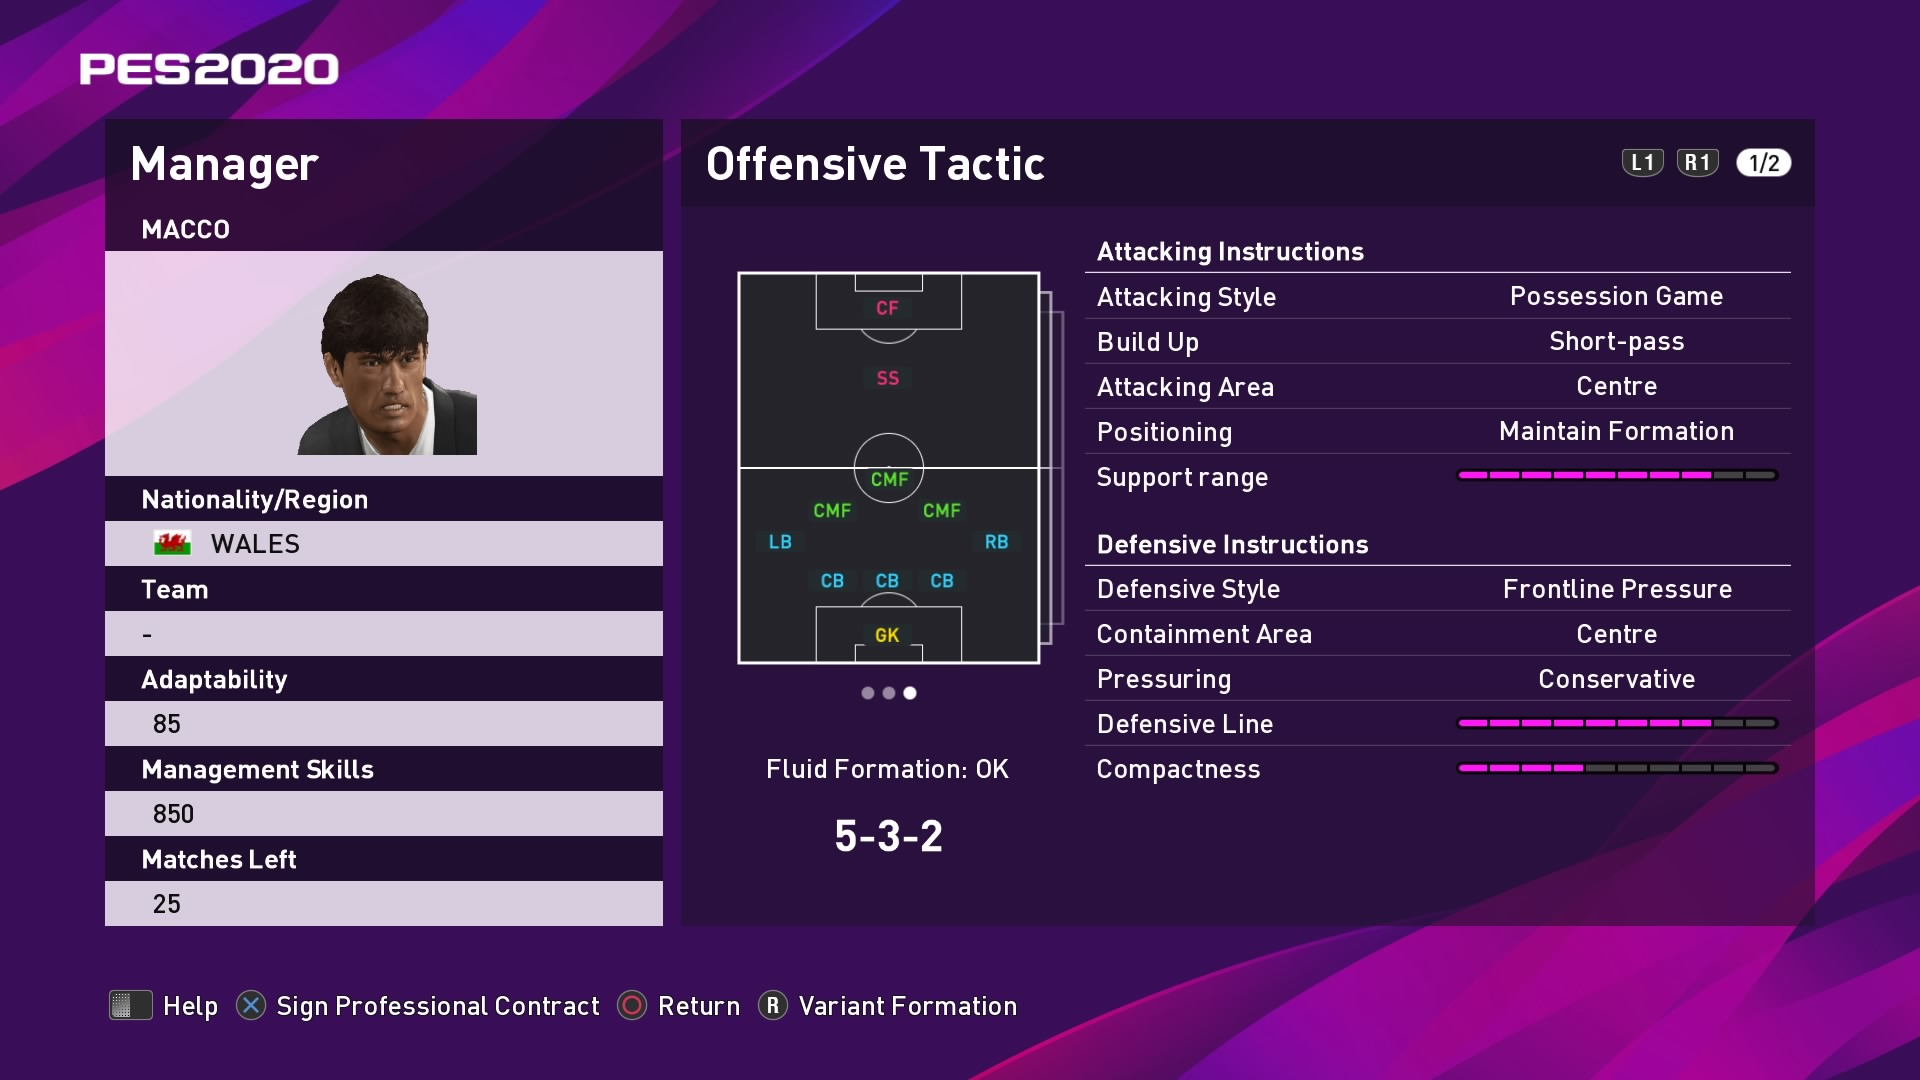 Macco Offensive Tactic when out of possession